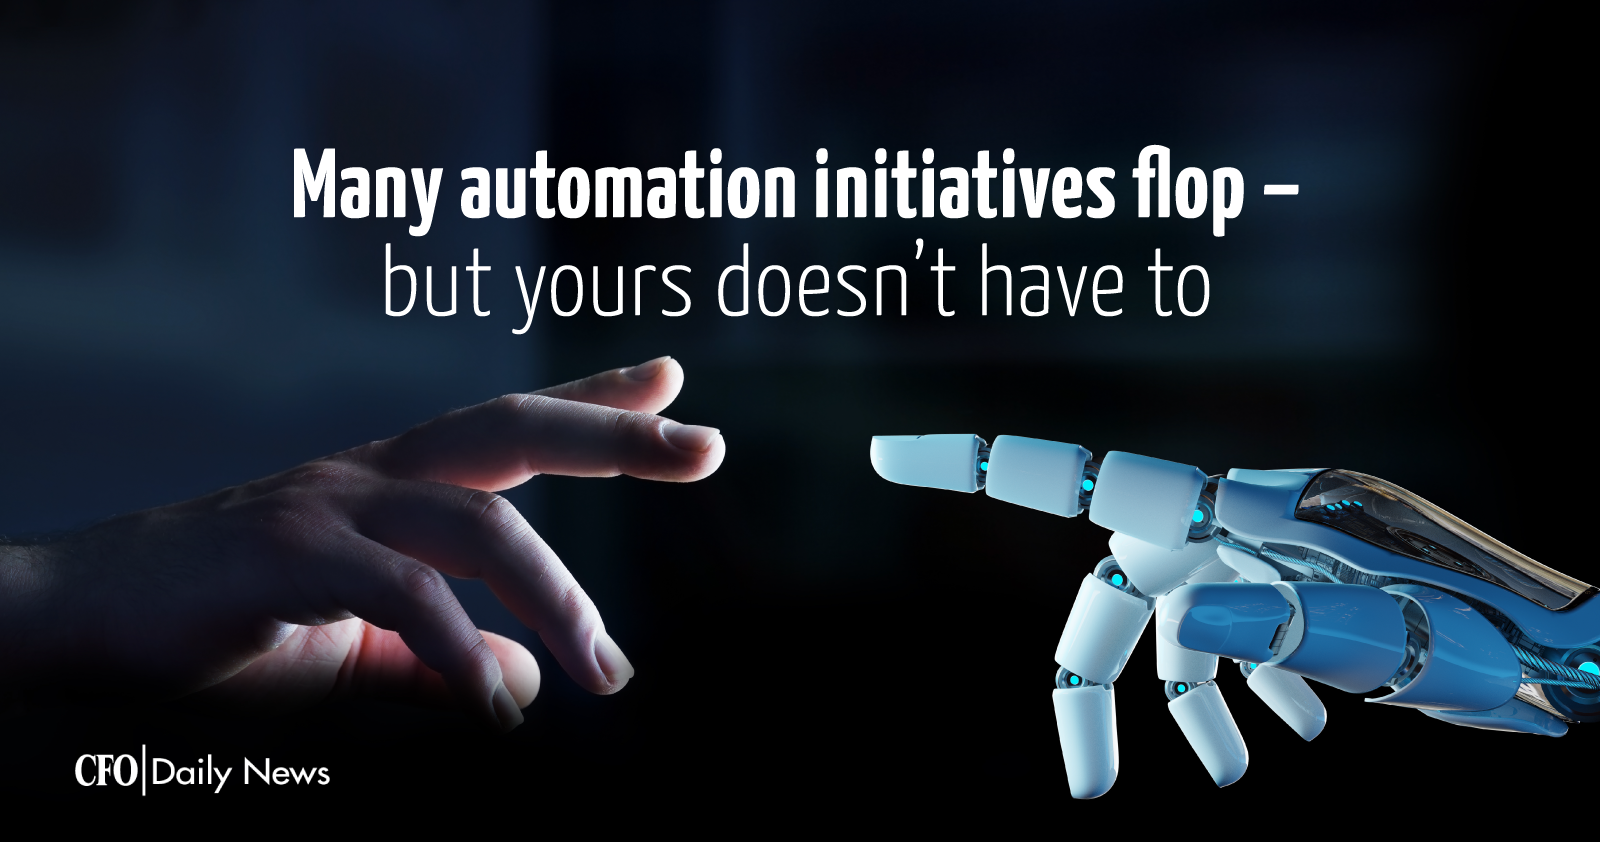 many automation initiatives flop but yours does not have to